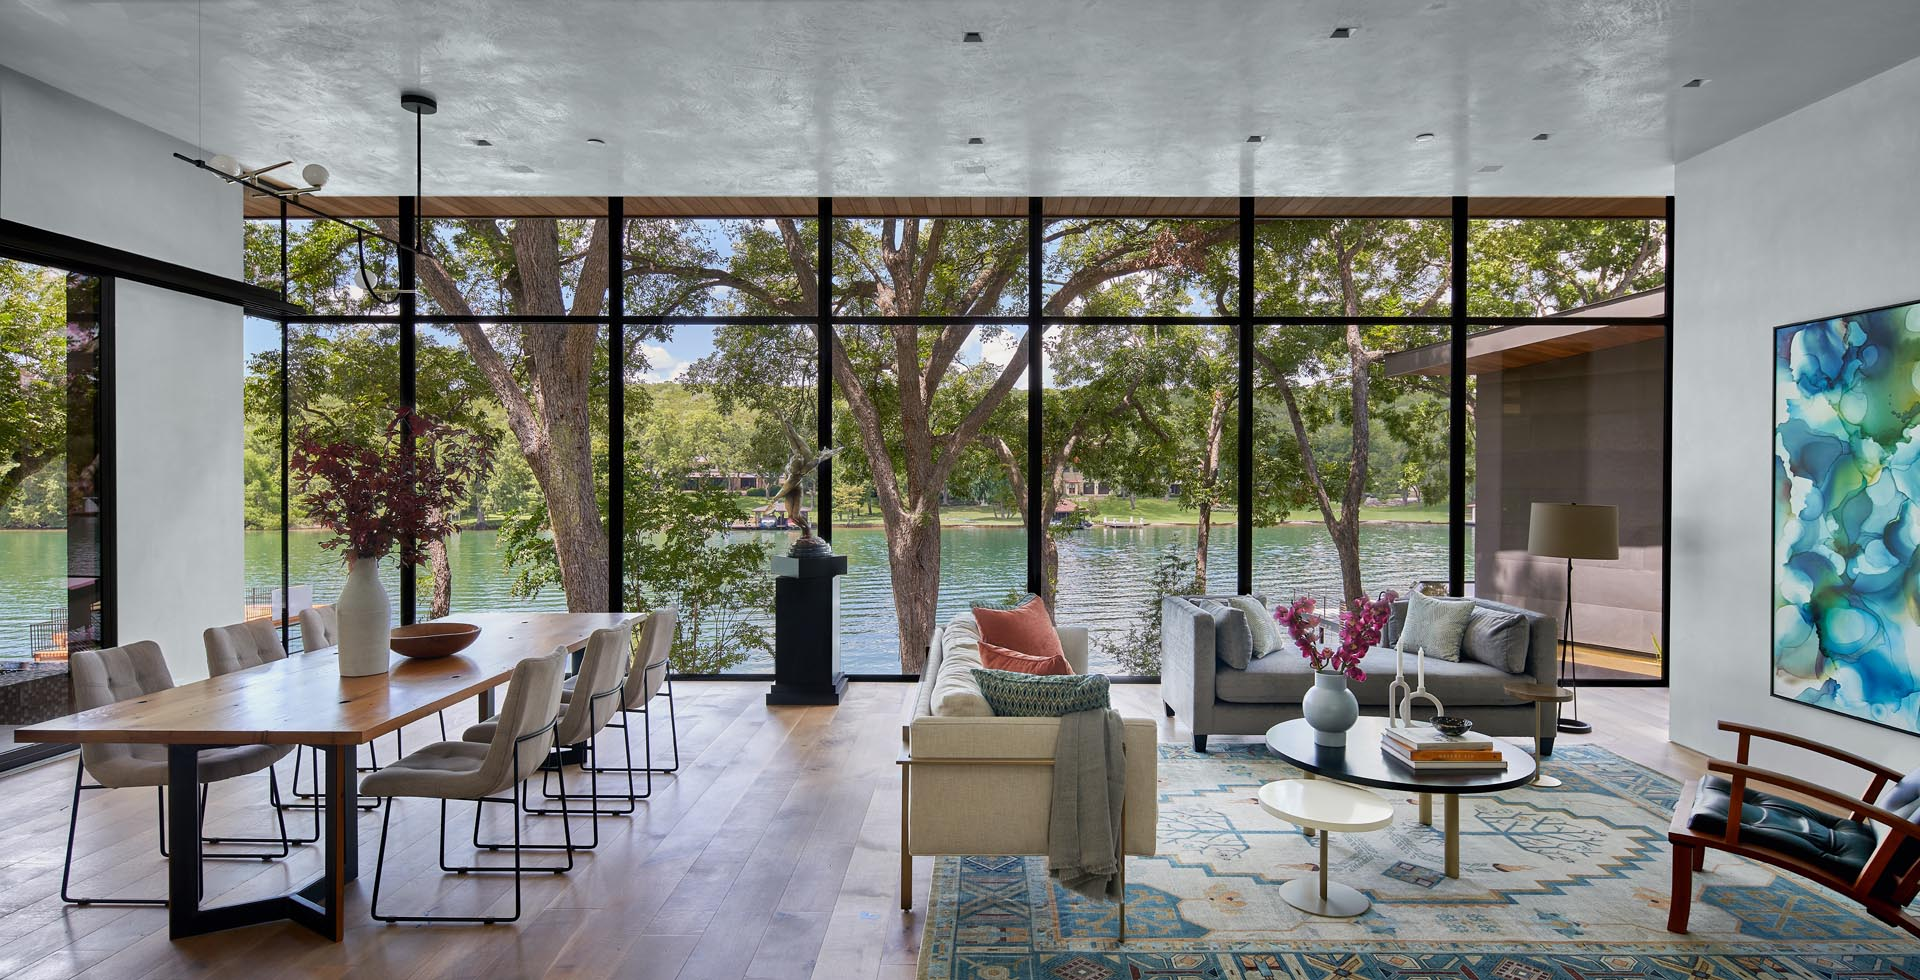 The new living room and dining area, which is open to an outdoor space, has a wall of floor-to-ceiling windows, while the open plan nature of the room allows the natural light and views to be enjoyed from any location.